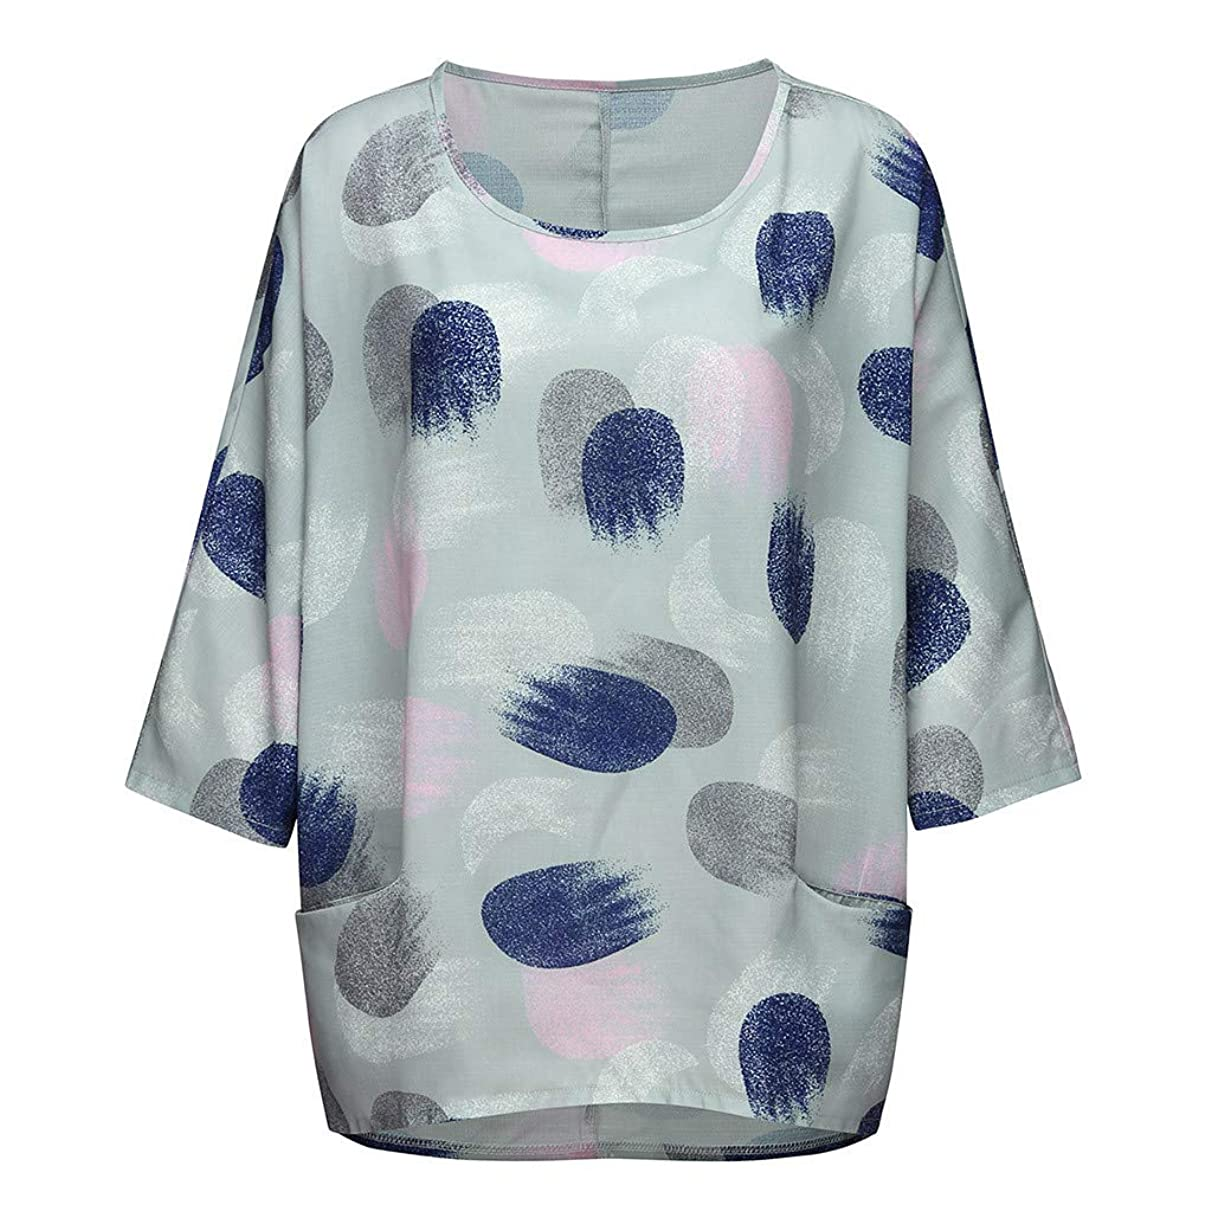 Eaktool Tank Tops for Women,Women Plus Size Print Batwing Sleeve Loose Blouse Tops Shirt with Pockets